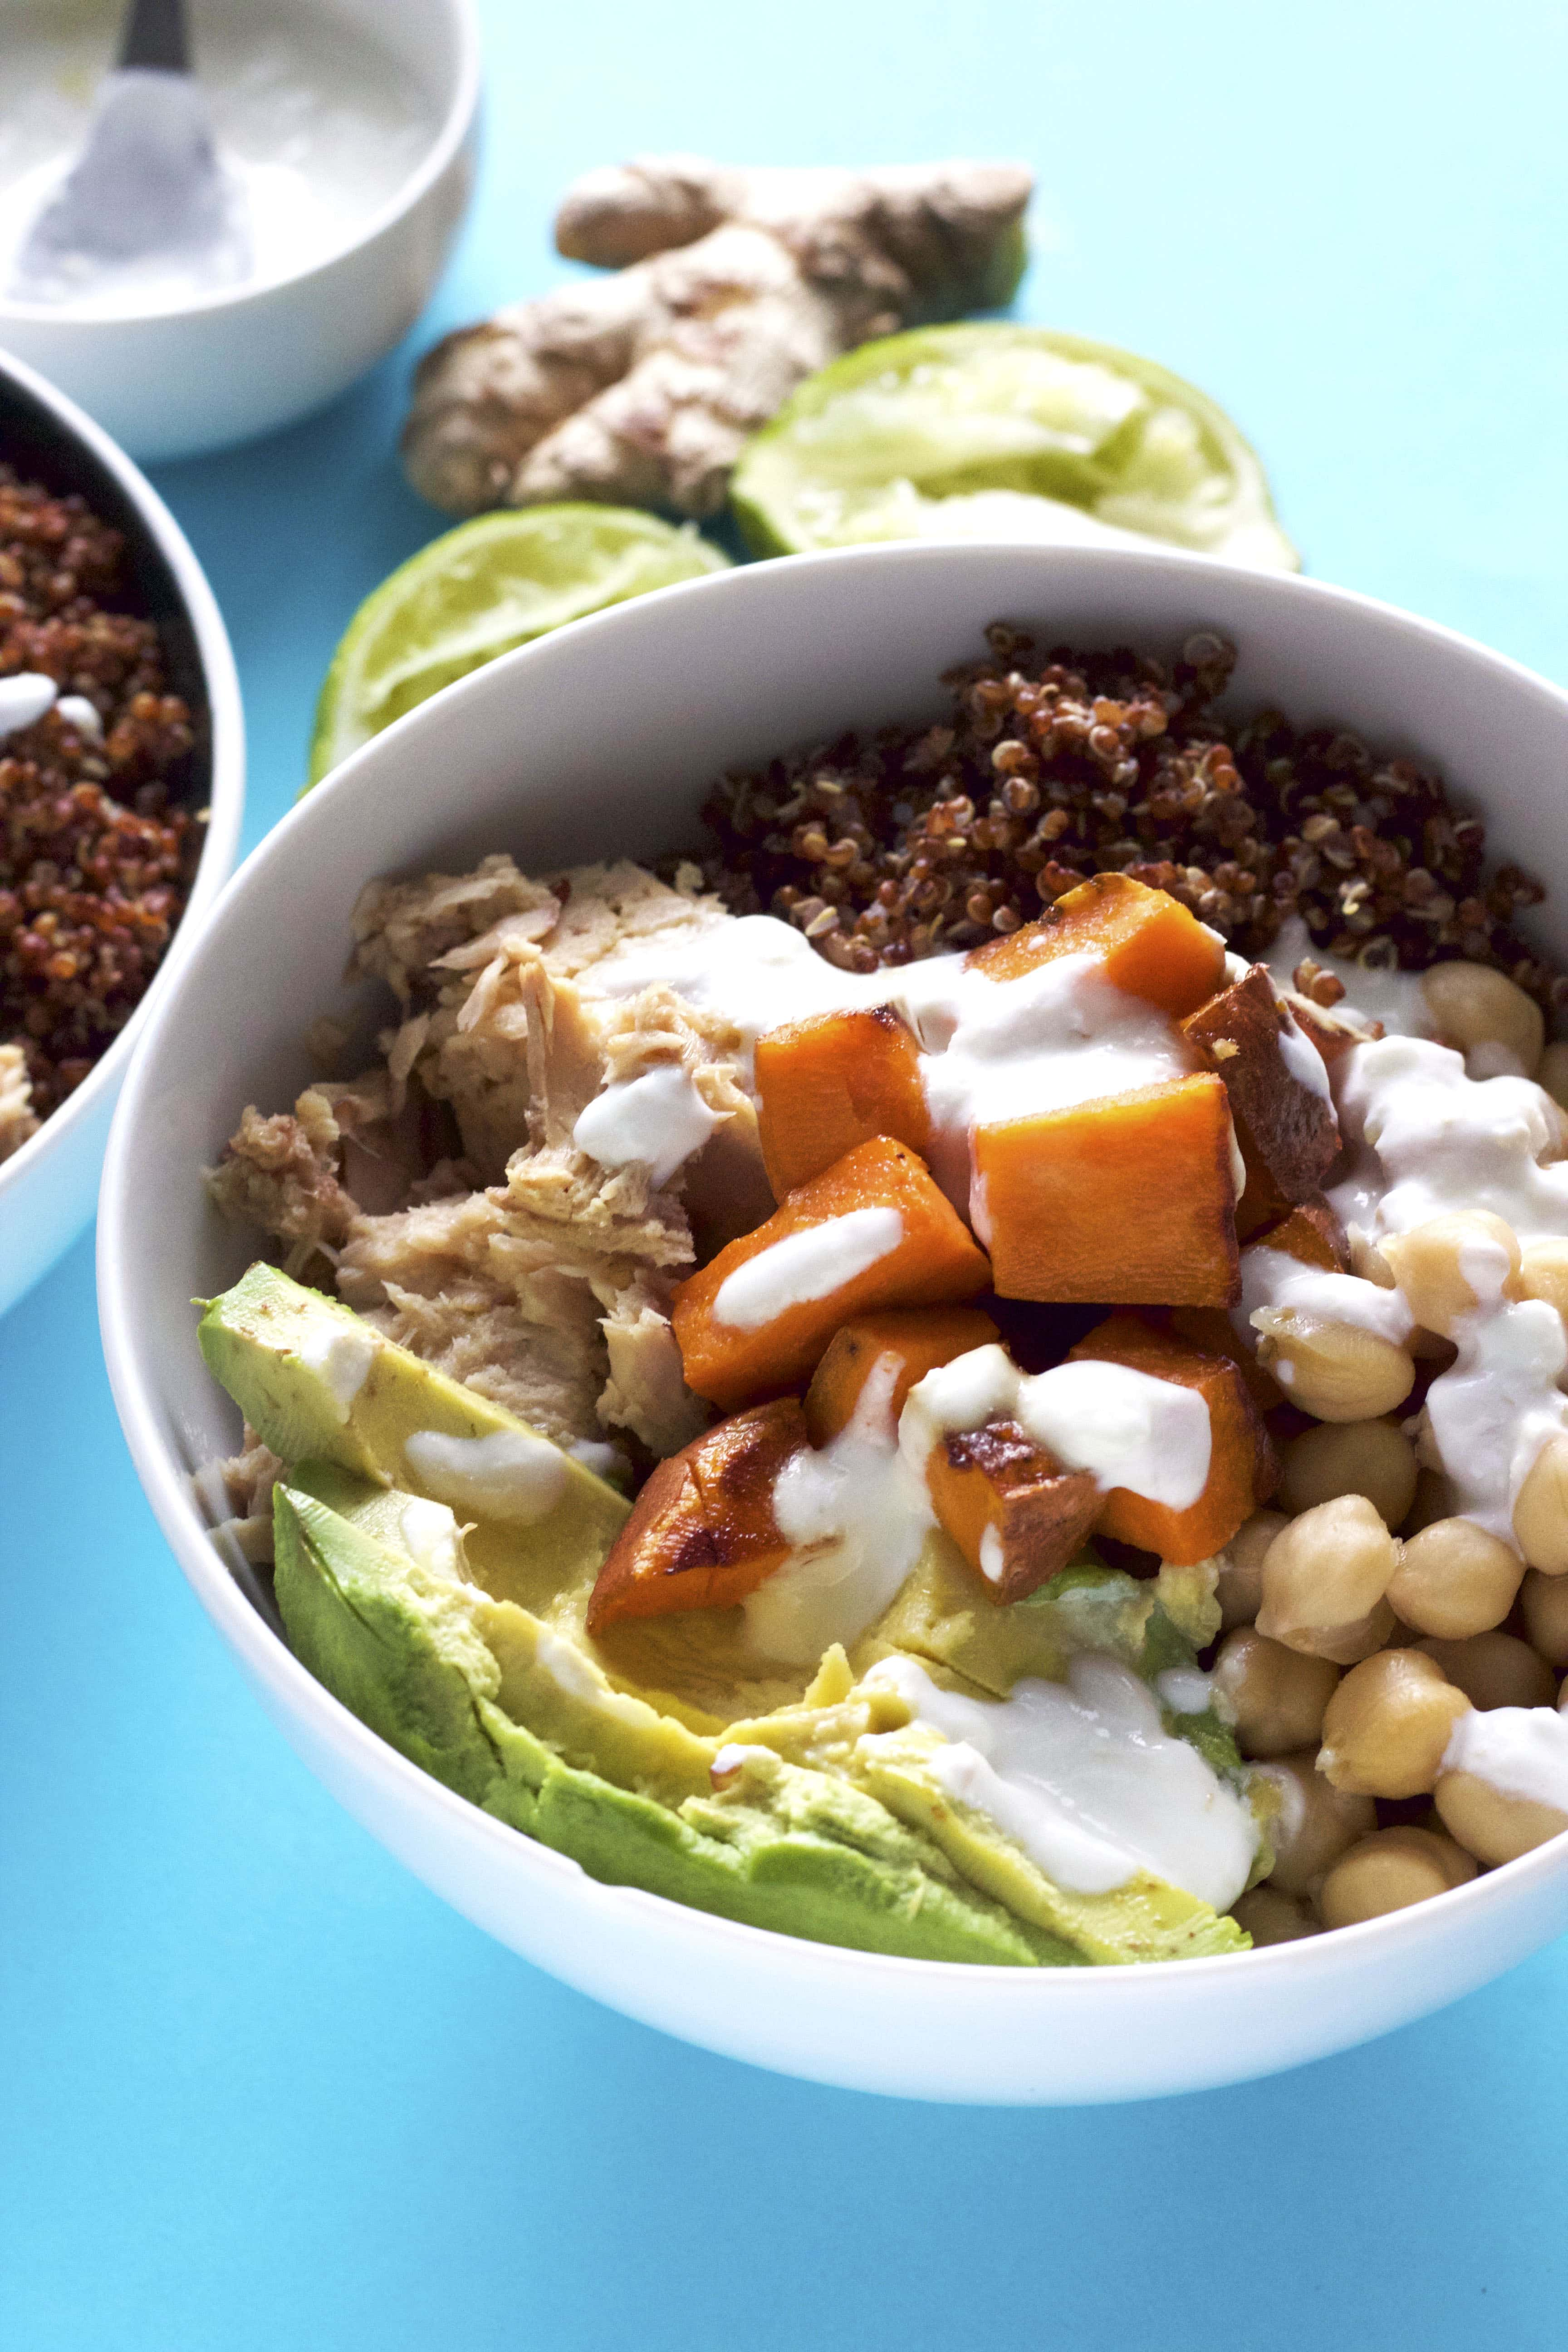 A delicious and healthy power bowl filled with quinoa, avocado and tuna! | thealmondeater.com